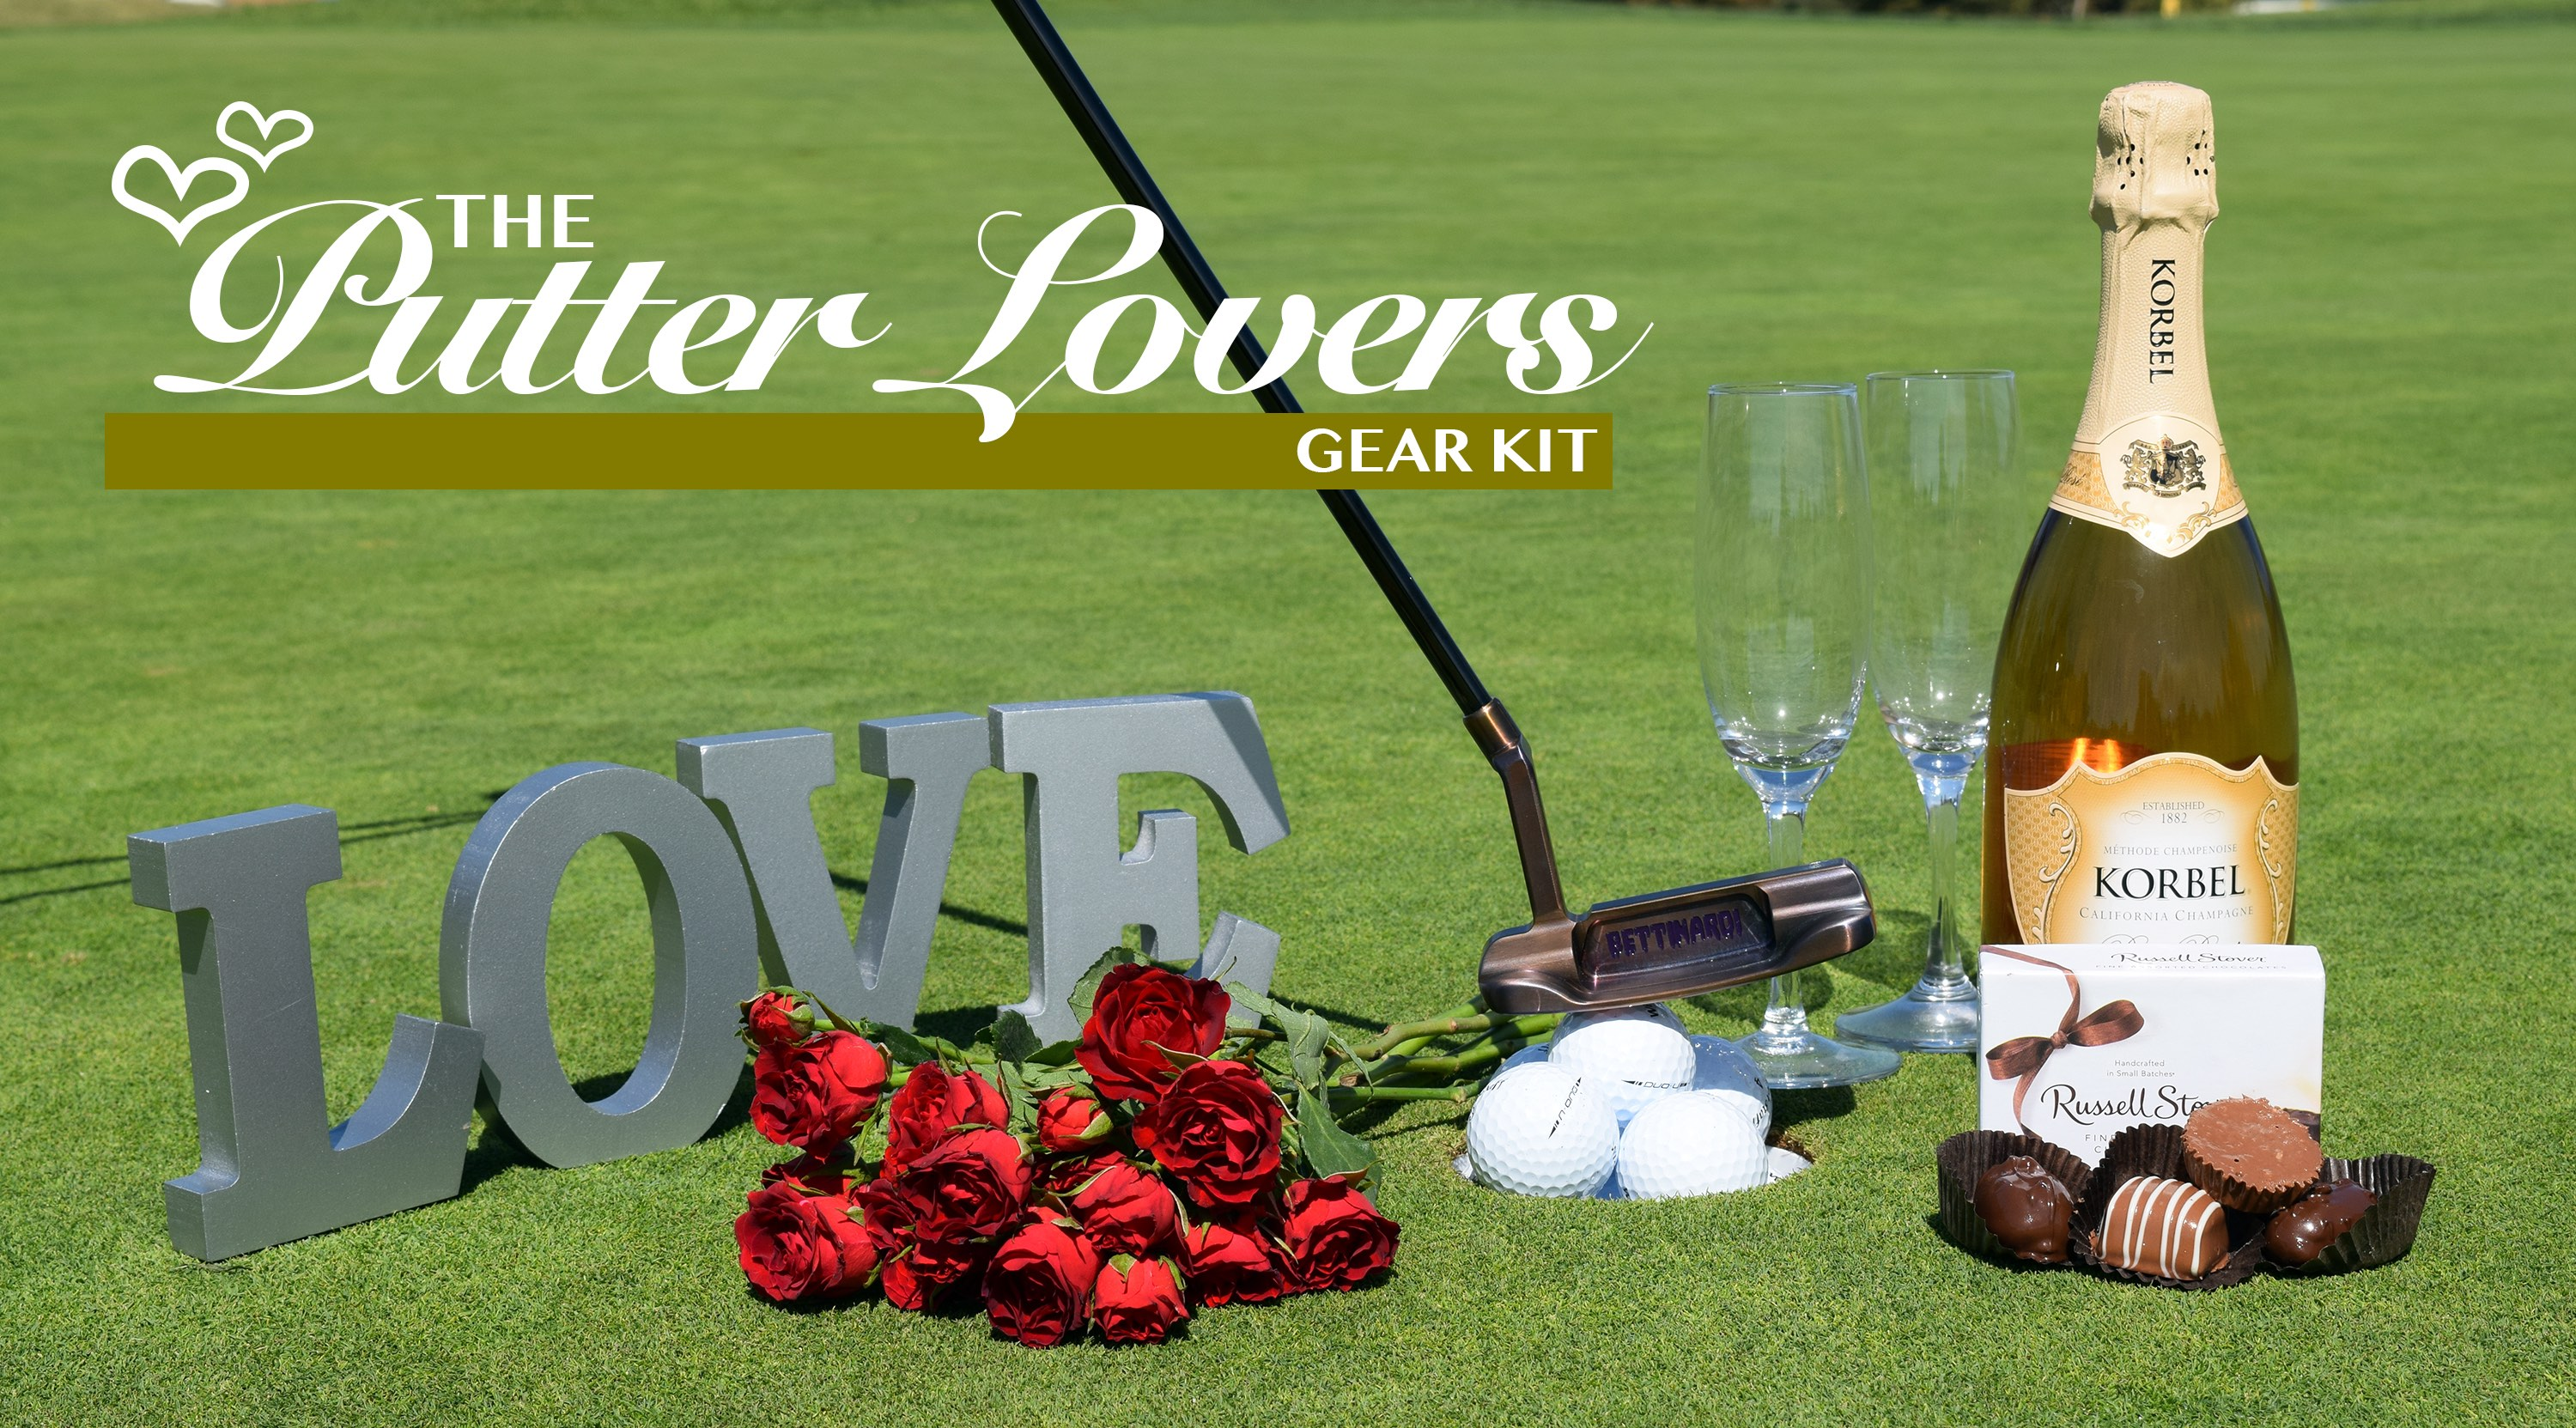 The Putter Lover's Kit